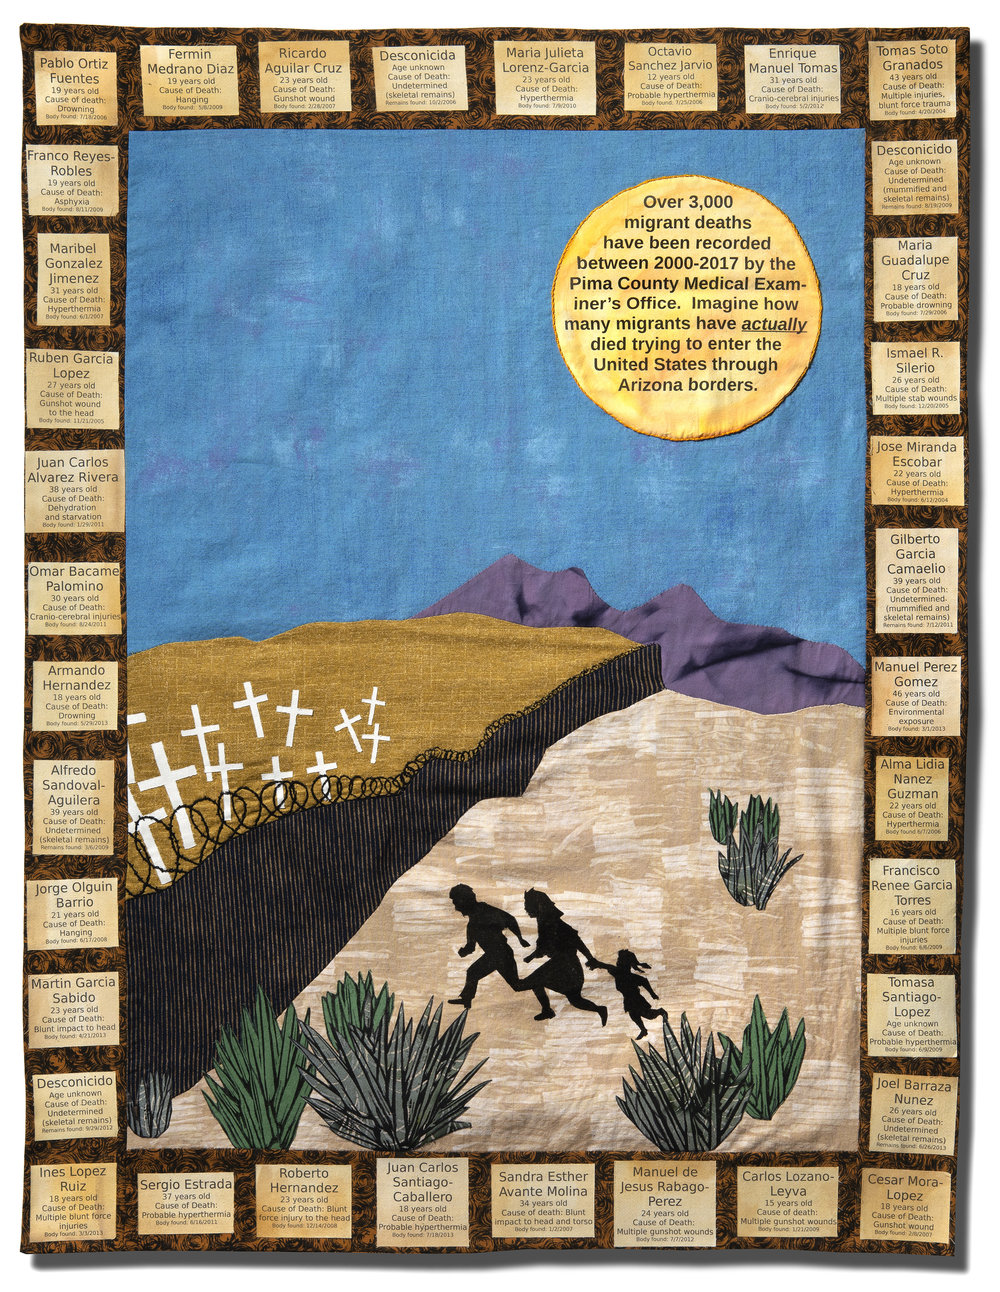 Photo Courtesy: Wilson Graham   Migrant Memorial  is an extension of the work Jennifer Eschedor has done for the Migrant Quilt Project. This organization has created quilts to record migrant deaths since 2000.  Title: Migrant Memorial  Medium: cotton fabric, ink and embroidery floss  Dimensions: 27 x 35  Year of Creation: 2018  Price $850  For sales inquiries, please contact Etherton Gallery  www.ethertongallery.com